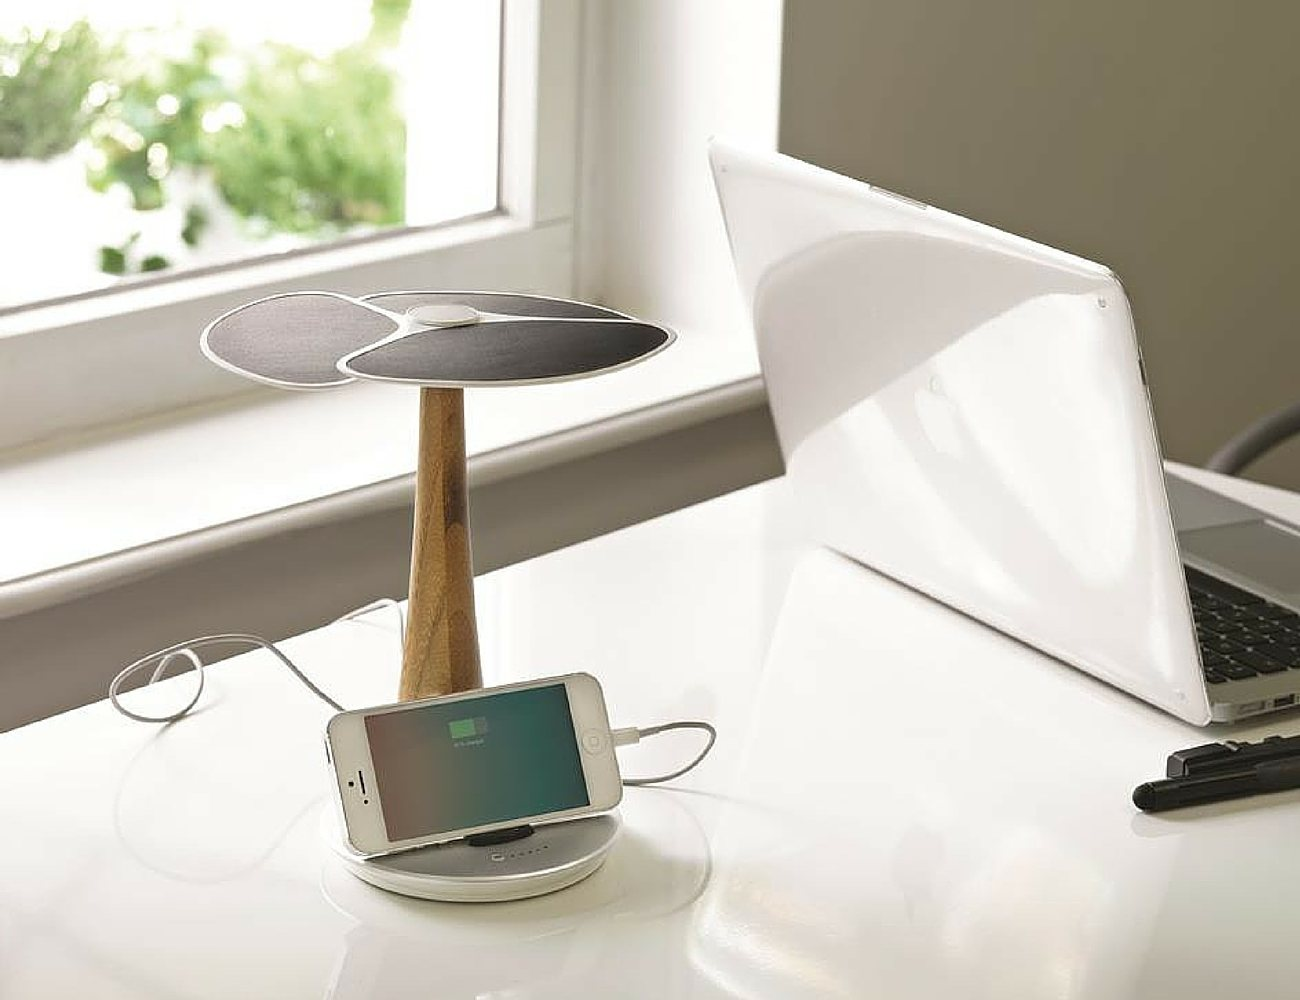 Ginkgo Solar Tree – Eco-friendly Solar Charger